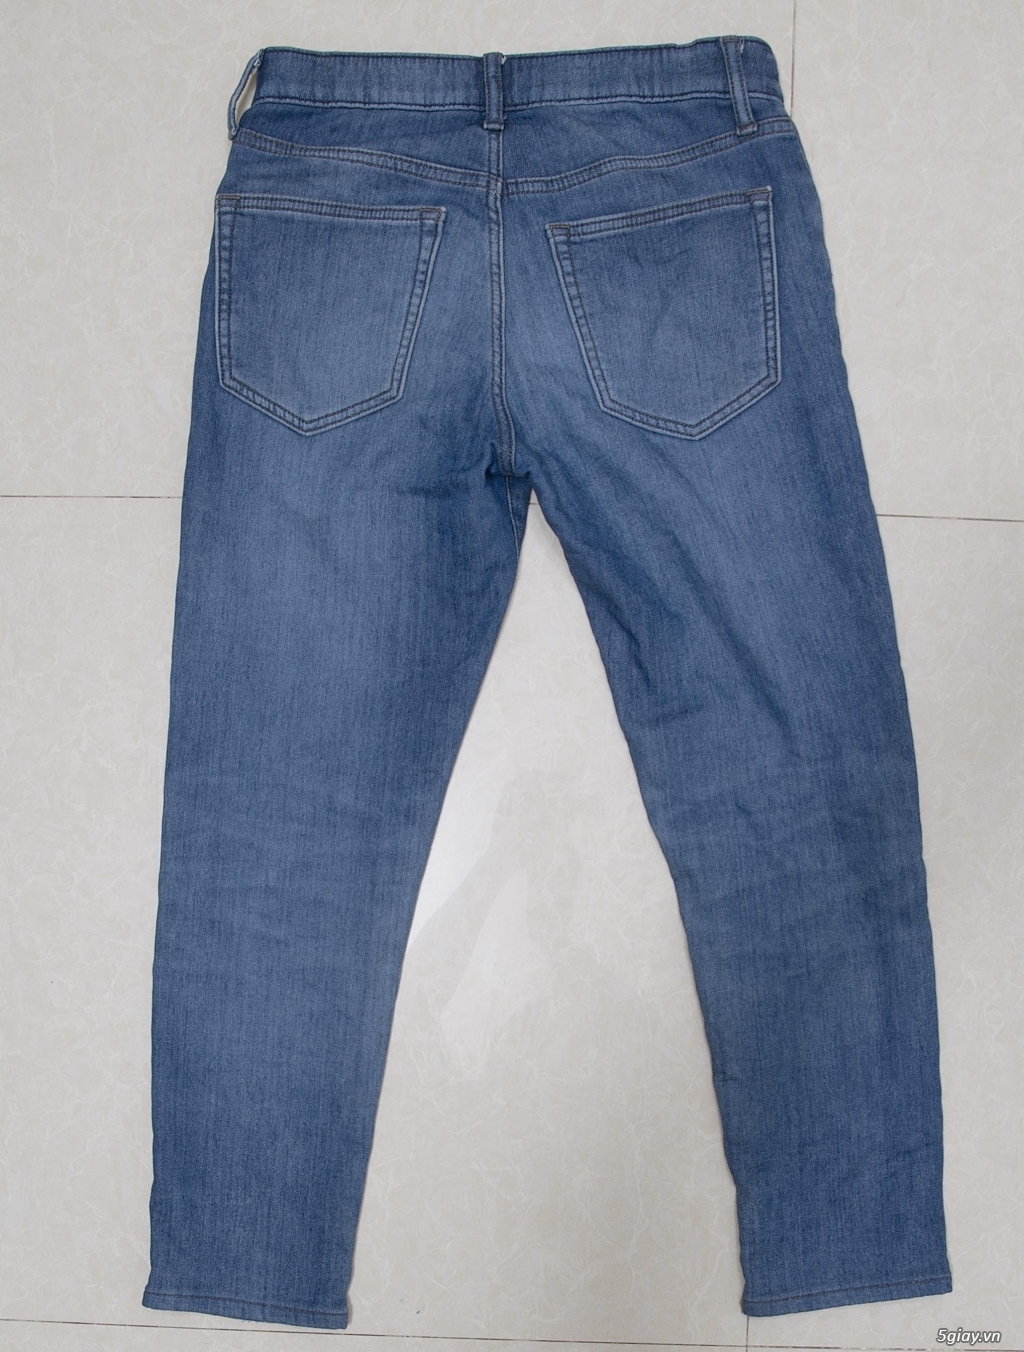 Jeans Authentic end nhanh 22h59' - 3/6/2021. - 1